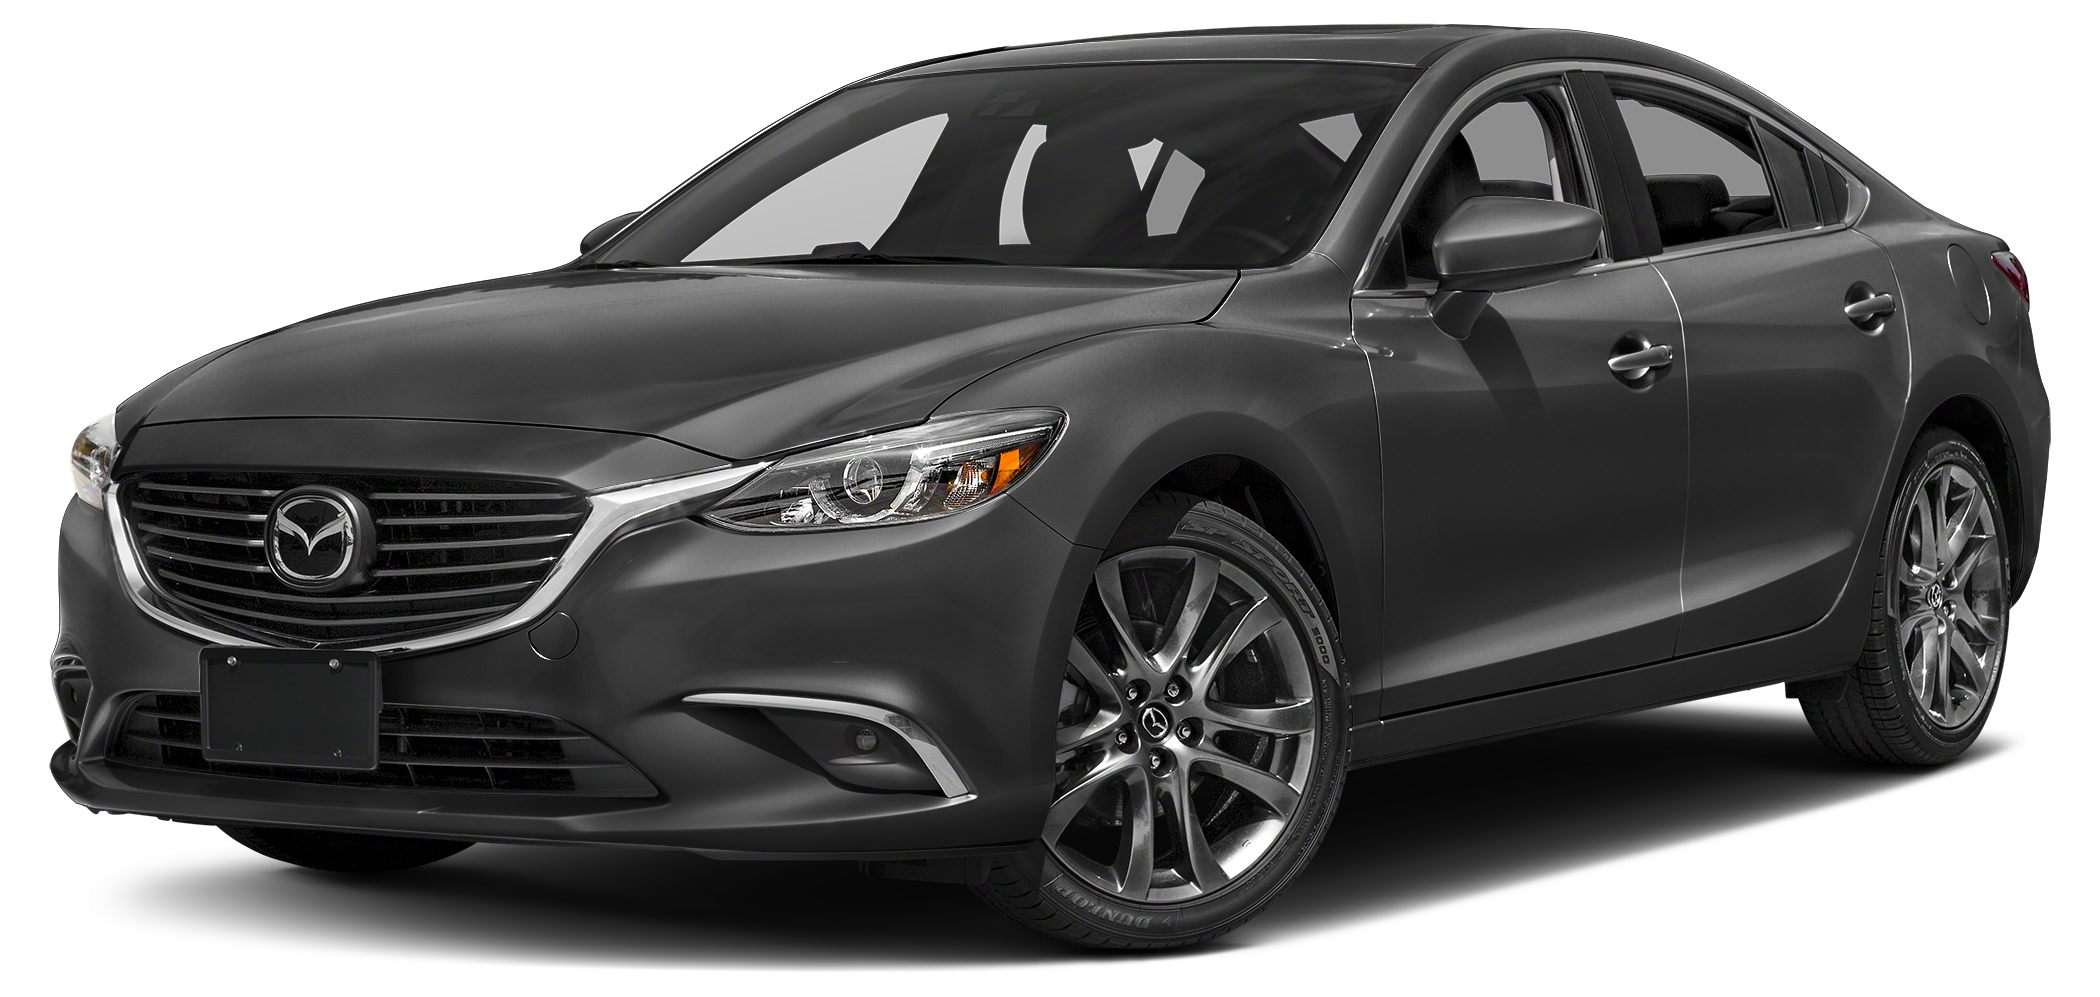 2016 Mazda MAZDA6 i Grand Touring New Arrival This 2016 Mazda MAZDA6 i Grand Touring will sell fa